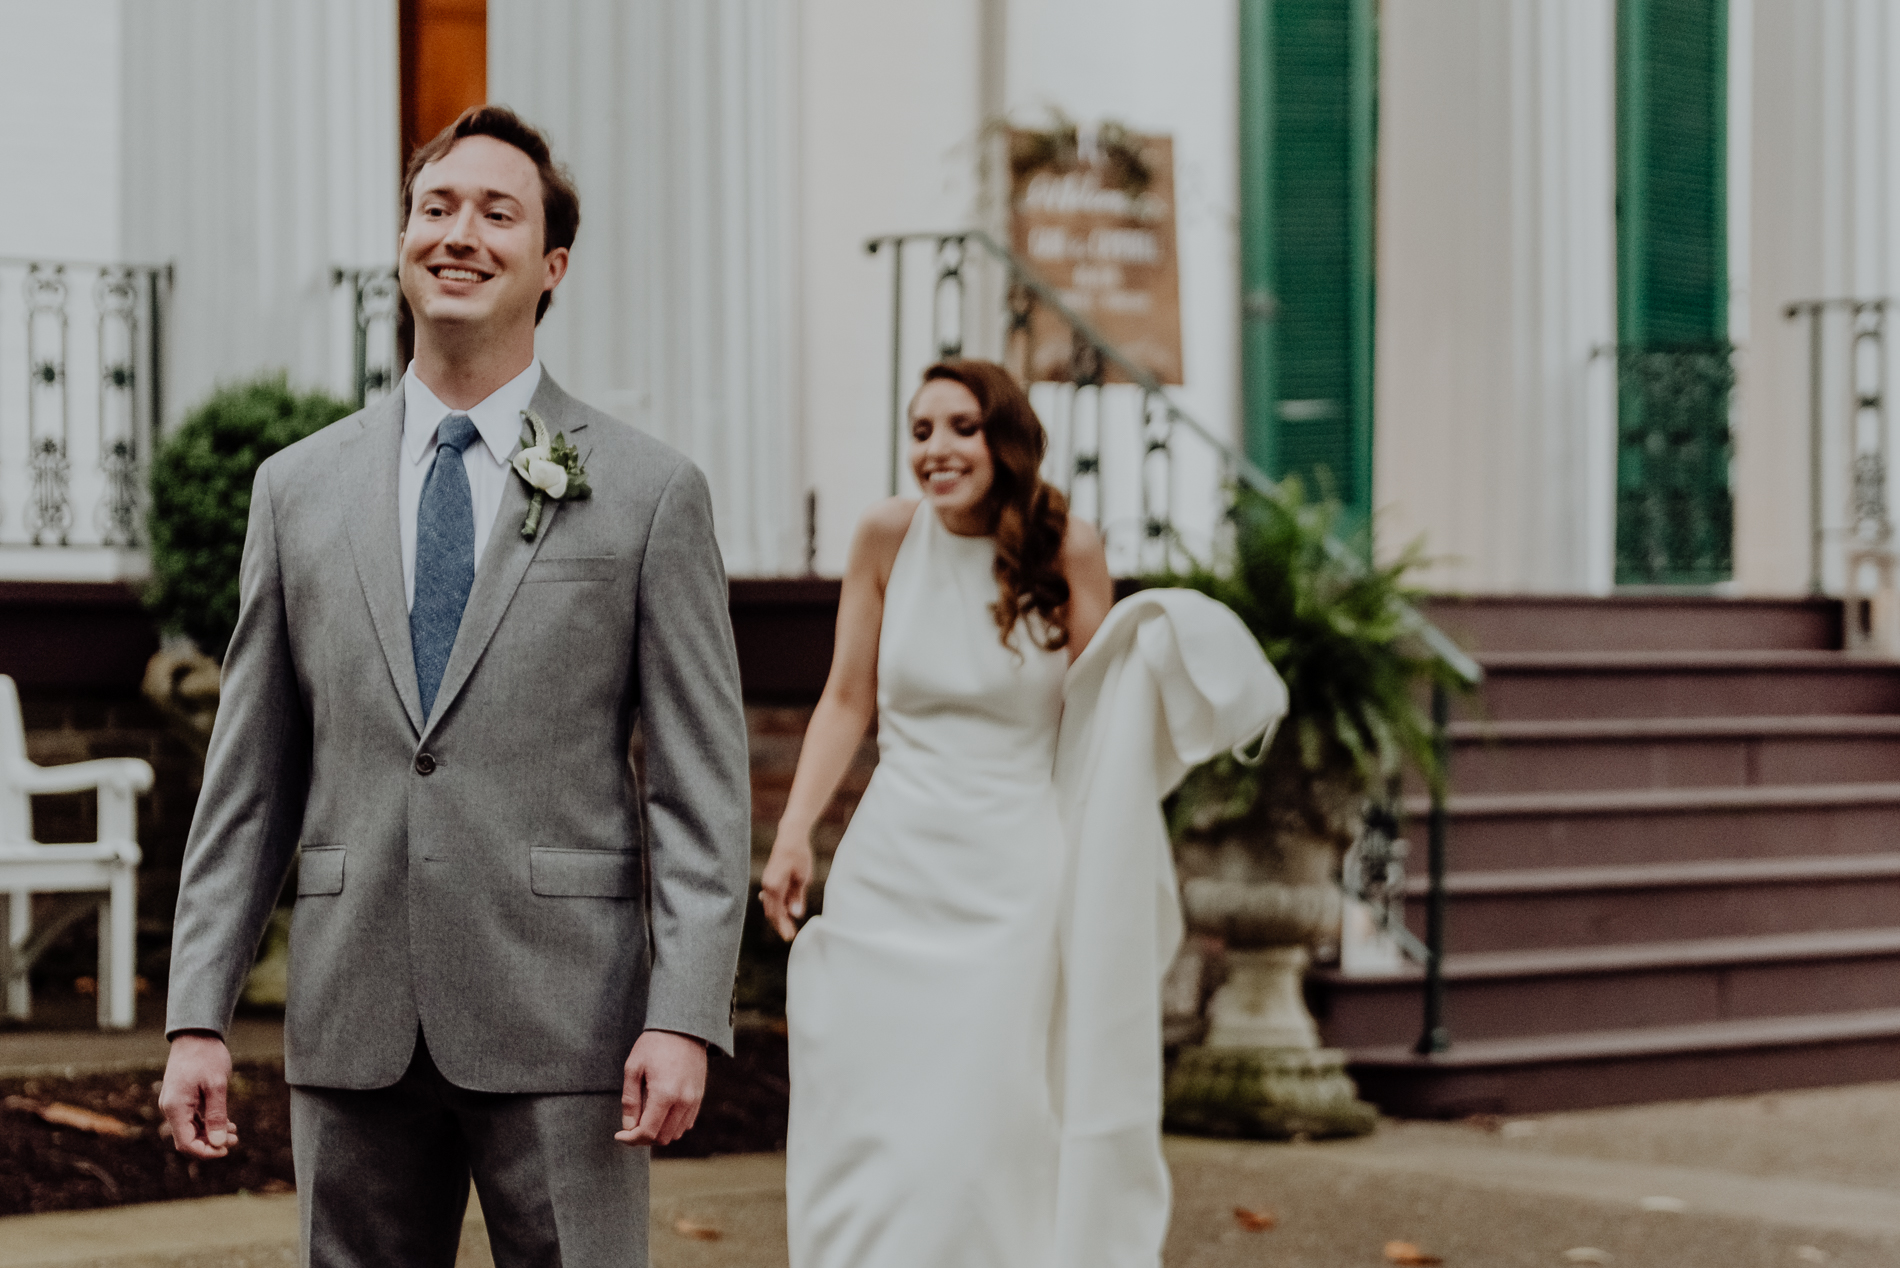 gabi and campbell east nashville wedding at riverwood mansion by wilde company-12.jpg